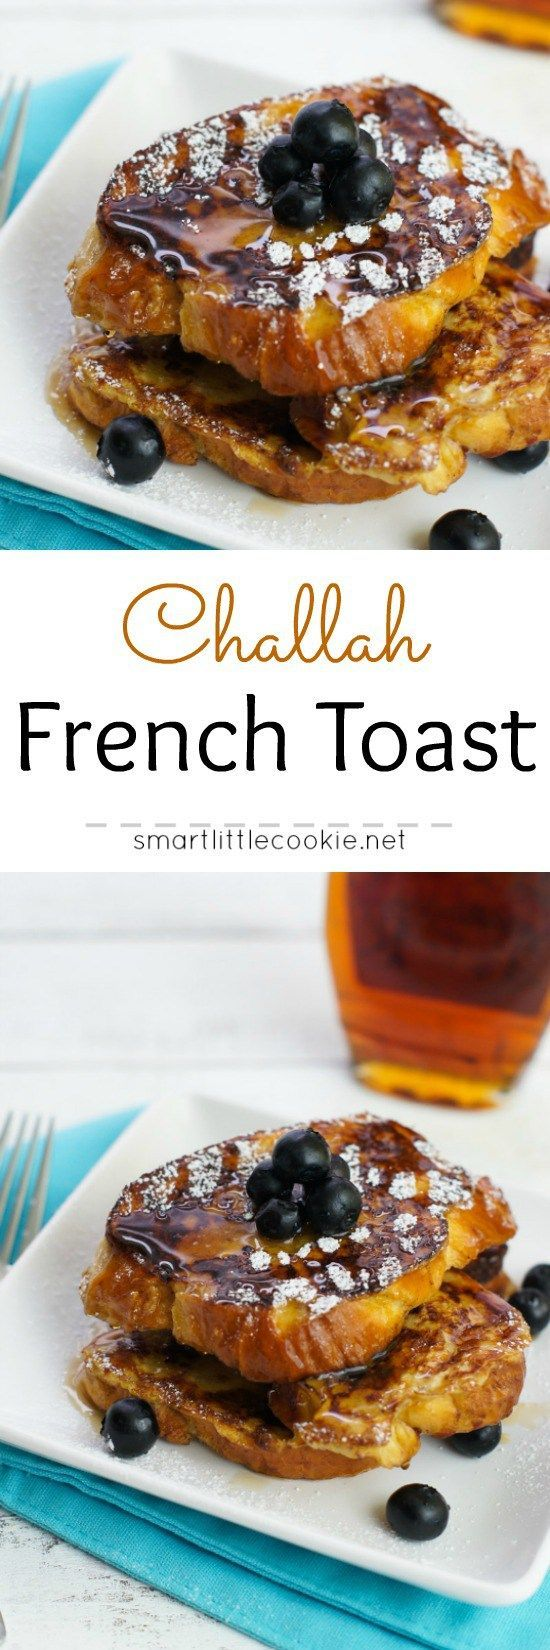 Challah French Toast ~ This classic french toast made with challah ...